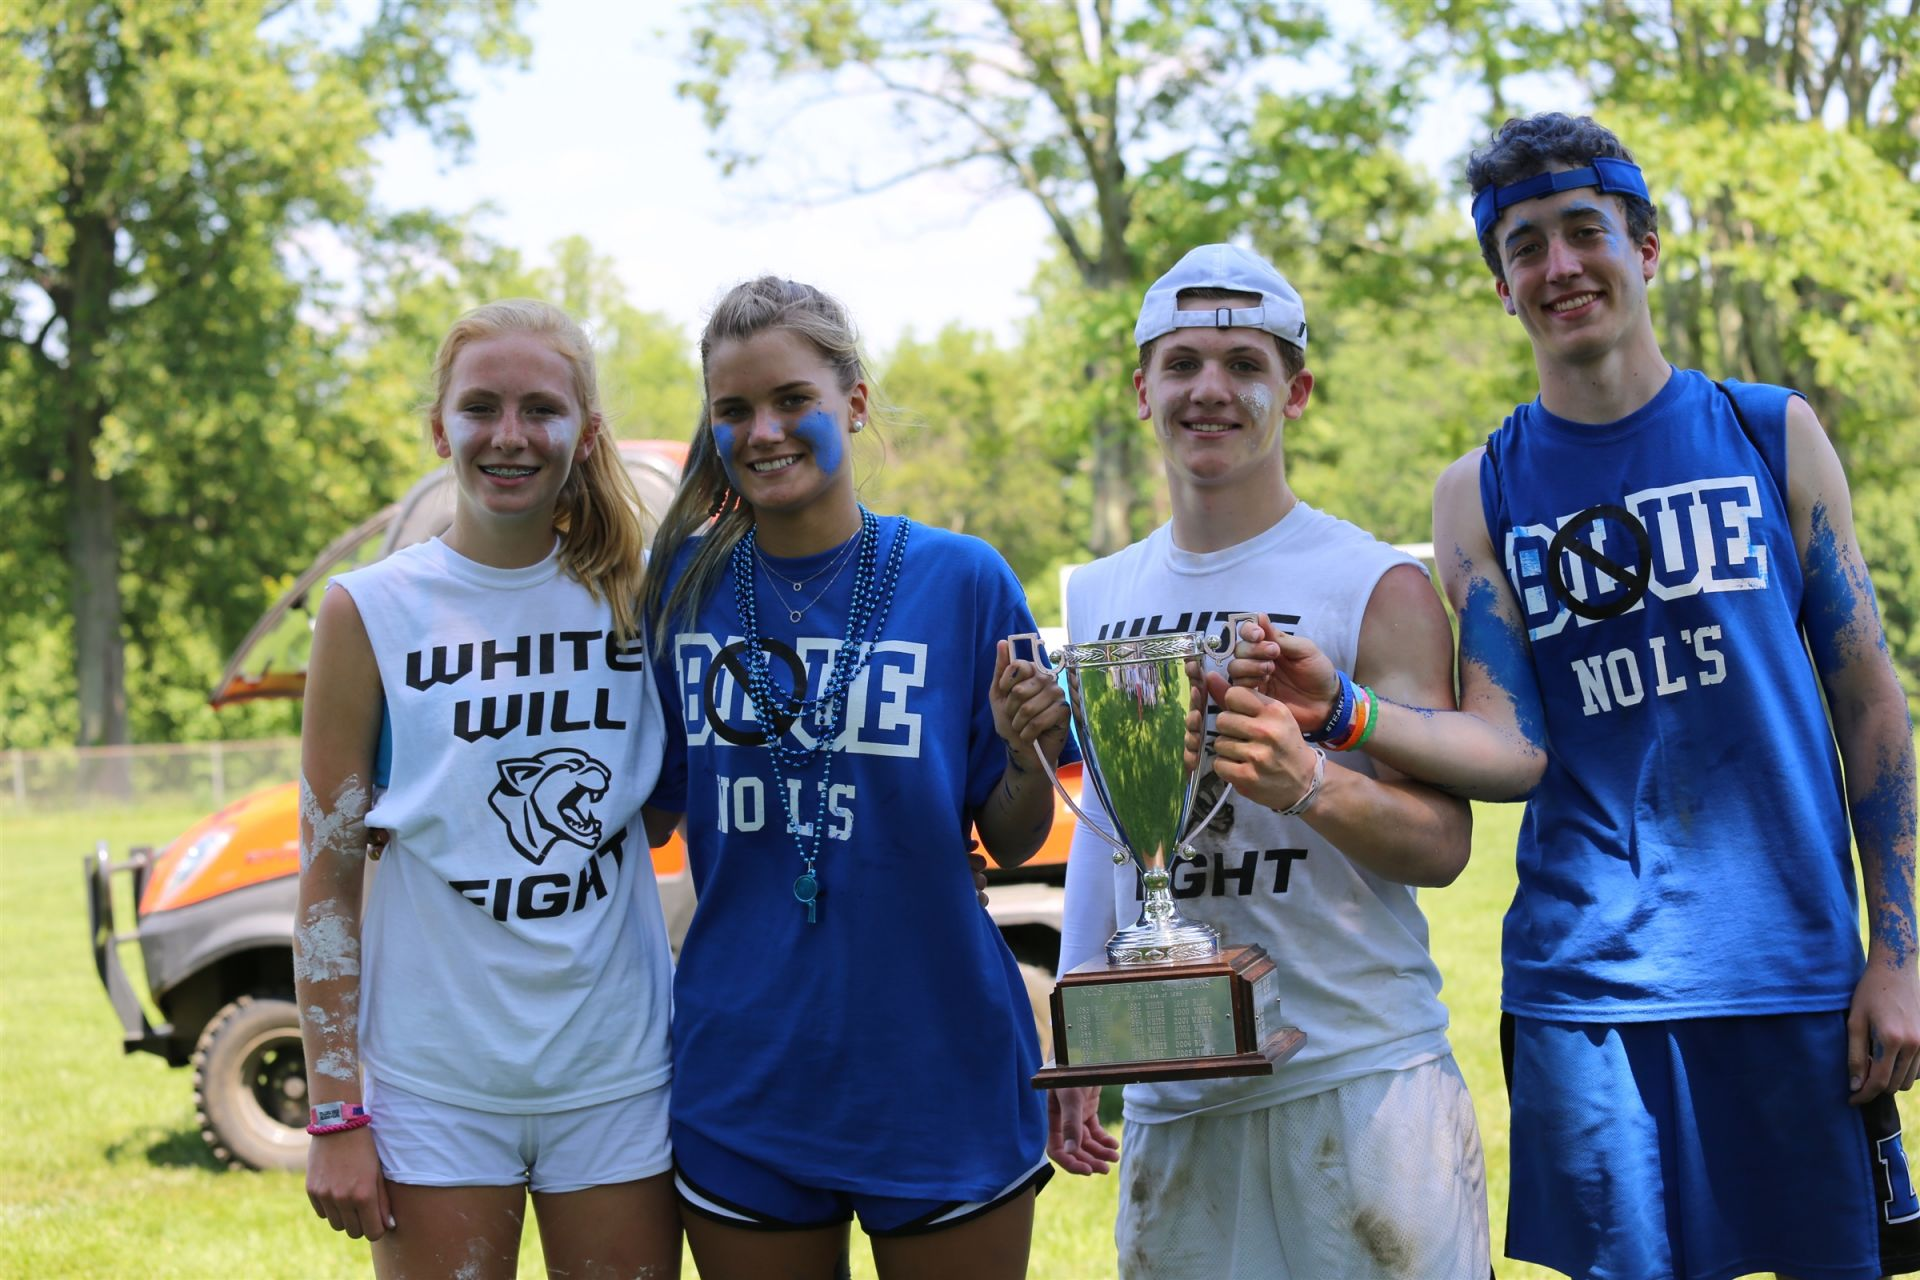 Ninth graders play a special leadership role as <b>captains of sports teams </b>, as well as spearheading Blue & White Day, a day of sports and friendly competition for the Middle and Upper Schools.